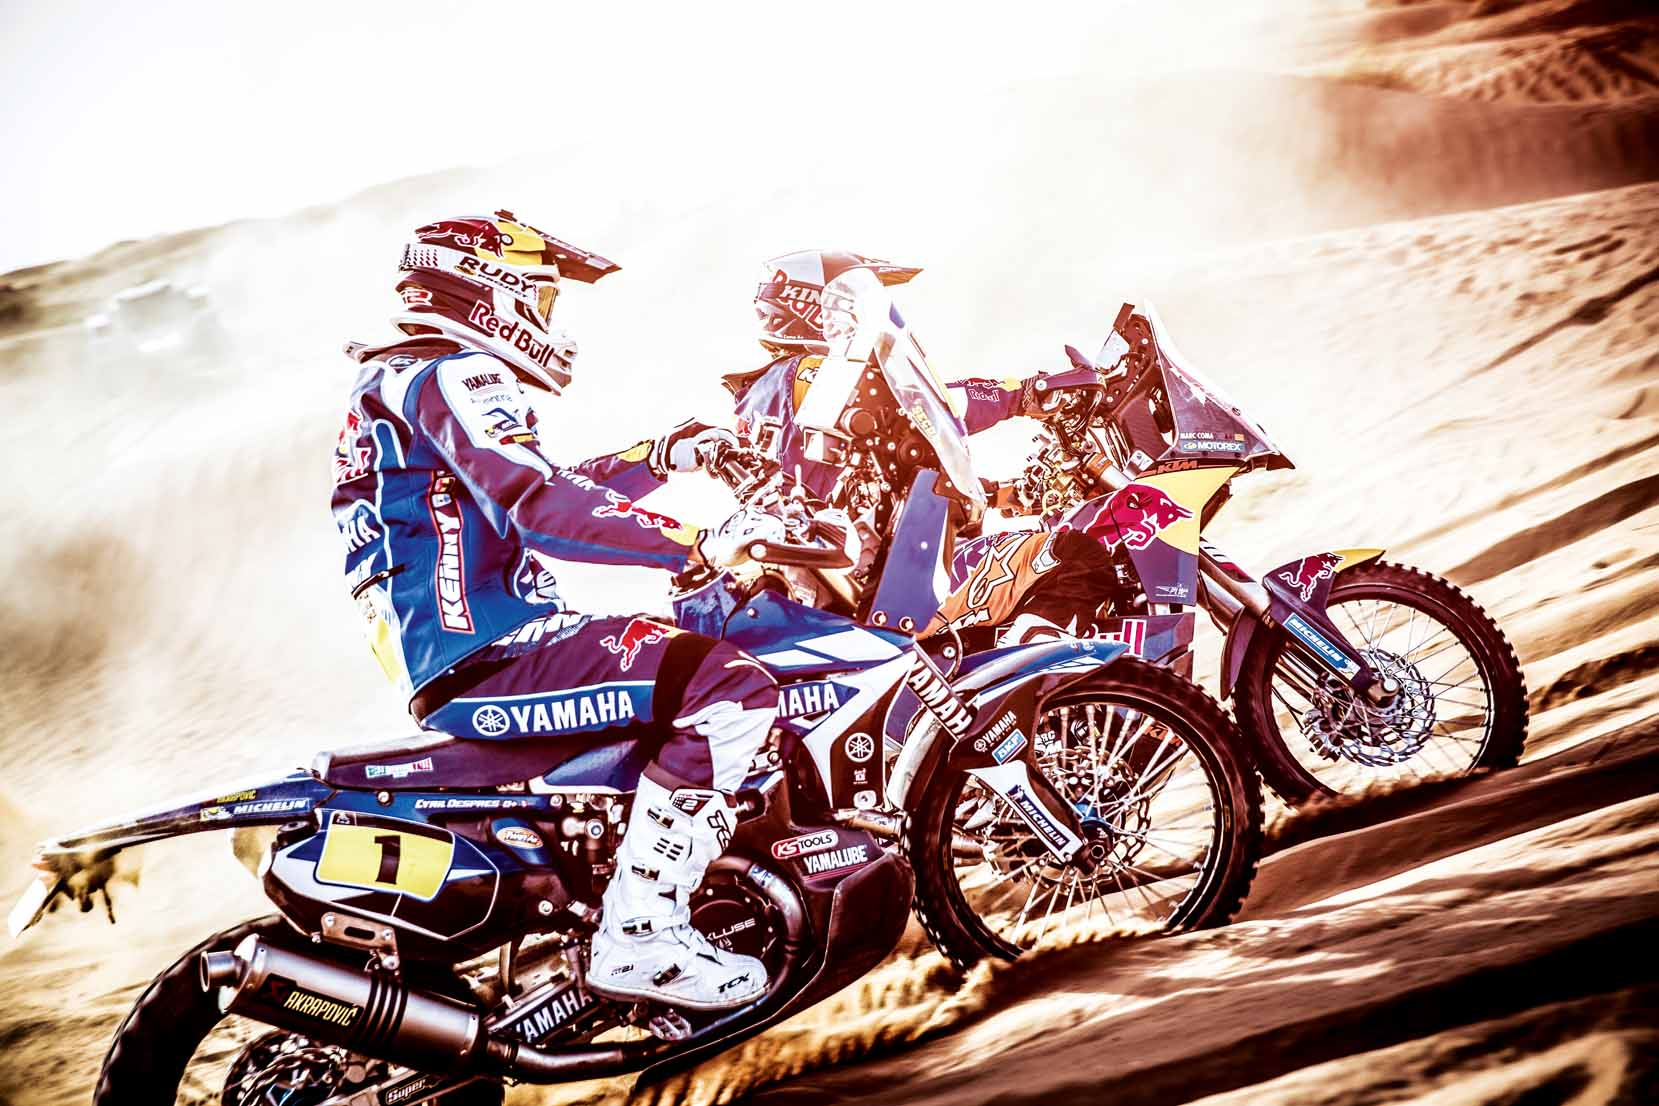 Cyril Despres of the Yamaha Racing Team and Marc Coma of the Red Bull KTM Factory Team perform during the Far Far West - A Fistful of Trophies in Erfourd, Morocco on October 9th, 2013 during an activation for Rally Dakar 2014 // Flavien Duhamel/Red Bull Content Pool // P-20131118-00224 // Usage for editorial use only // Please go to www.redbullcontentpool.com for further information. //